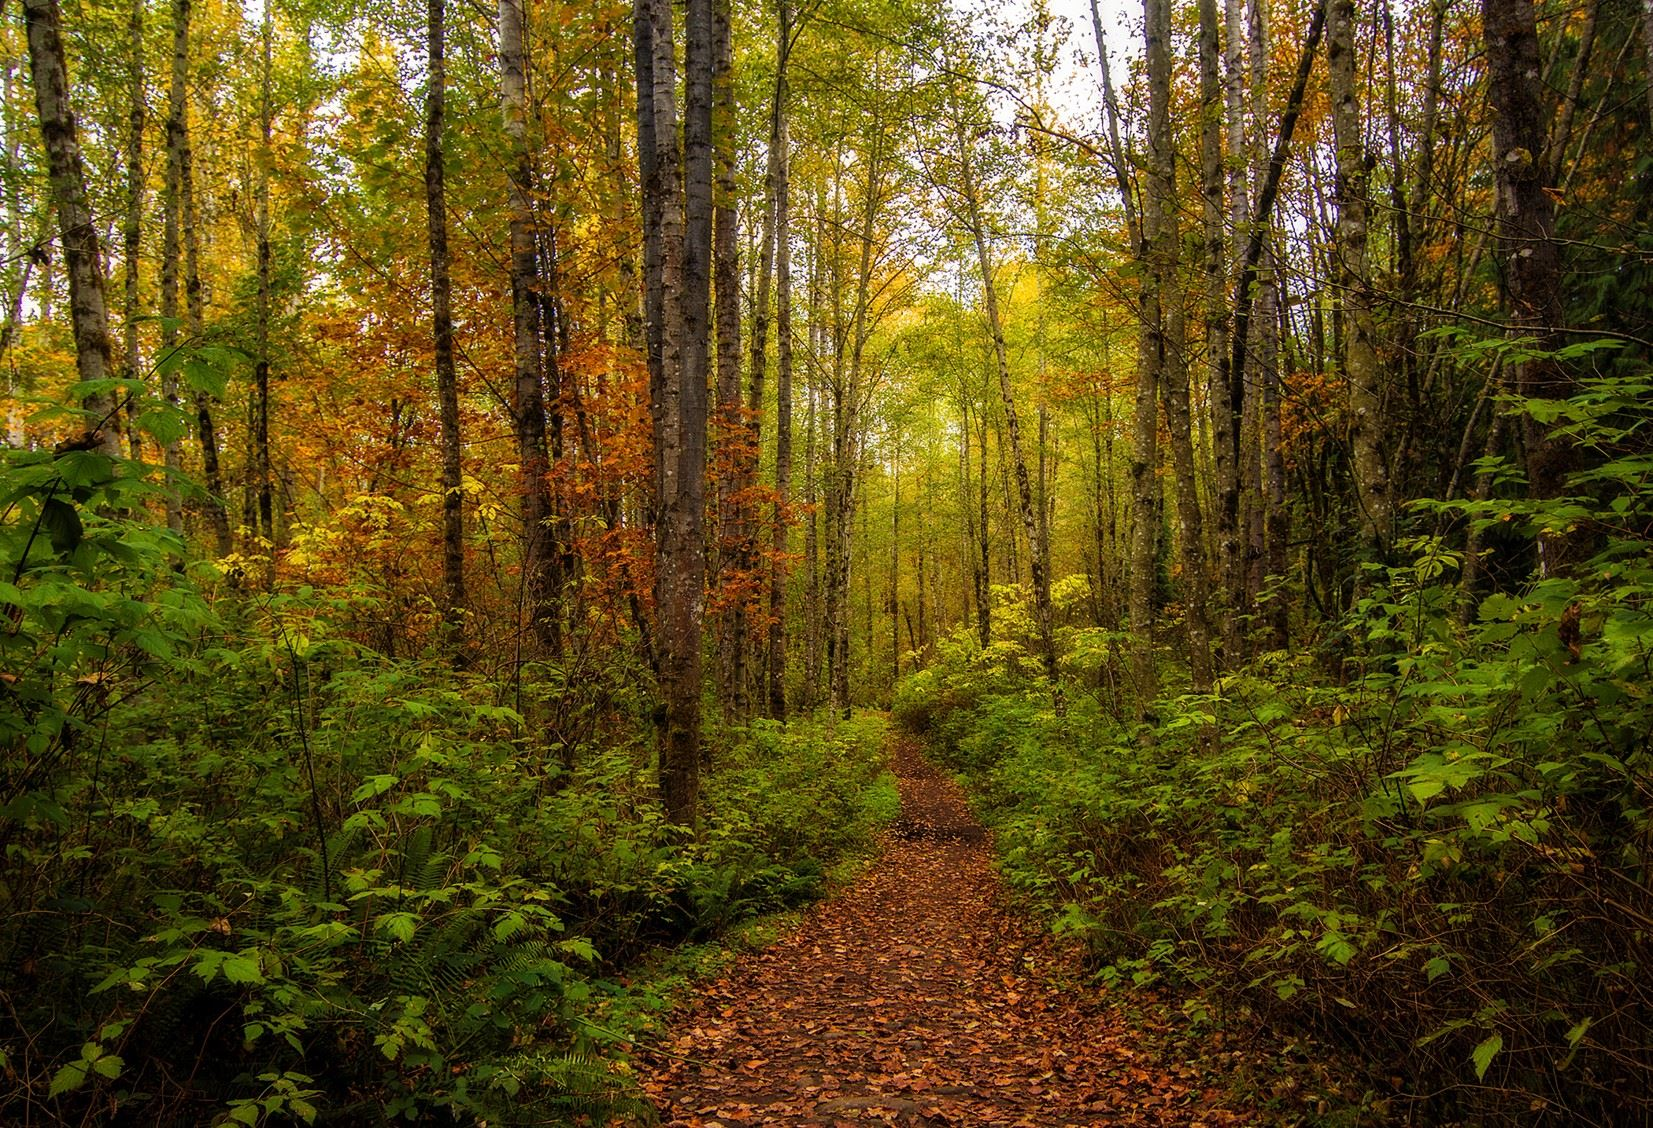 A photograph of the forest in the fall.  The trees are partly bare with yellow an brown leaves.  The narrow path is covered with fallen leaves and the